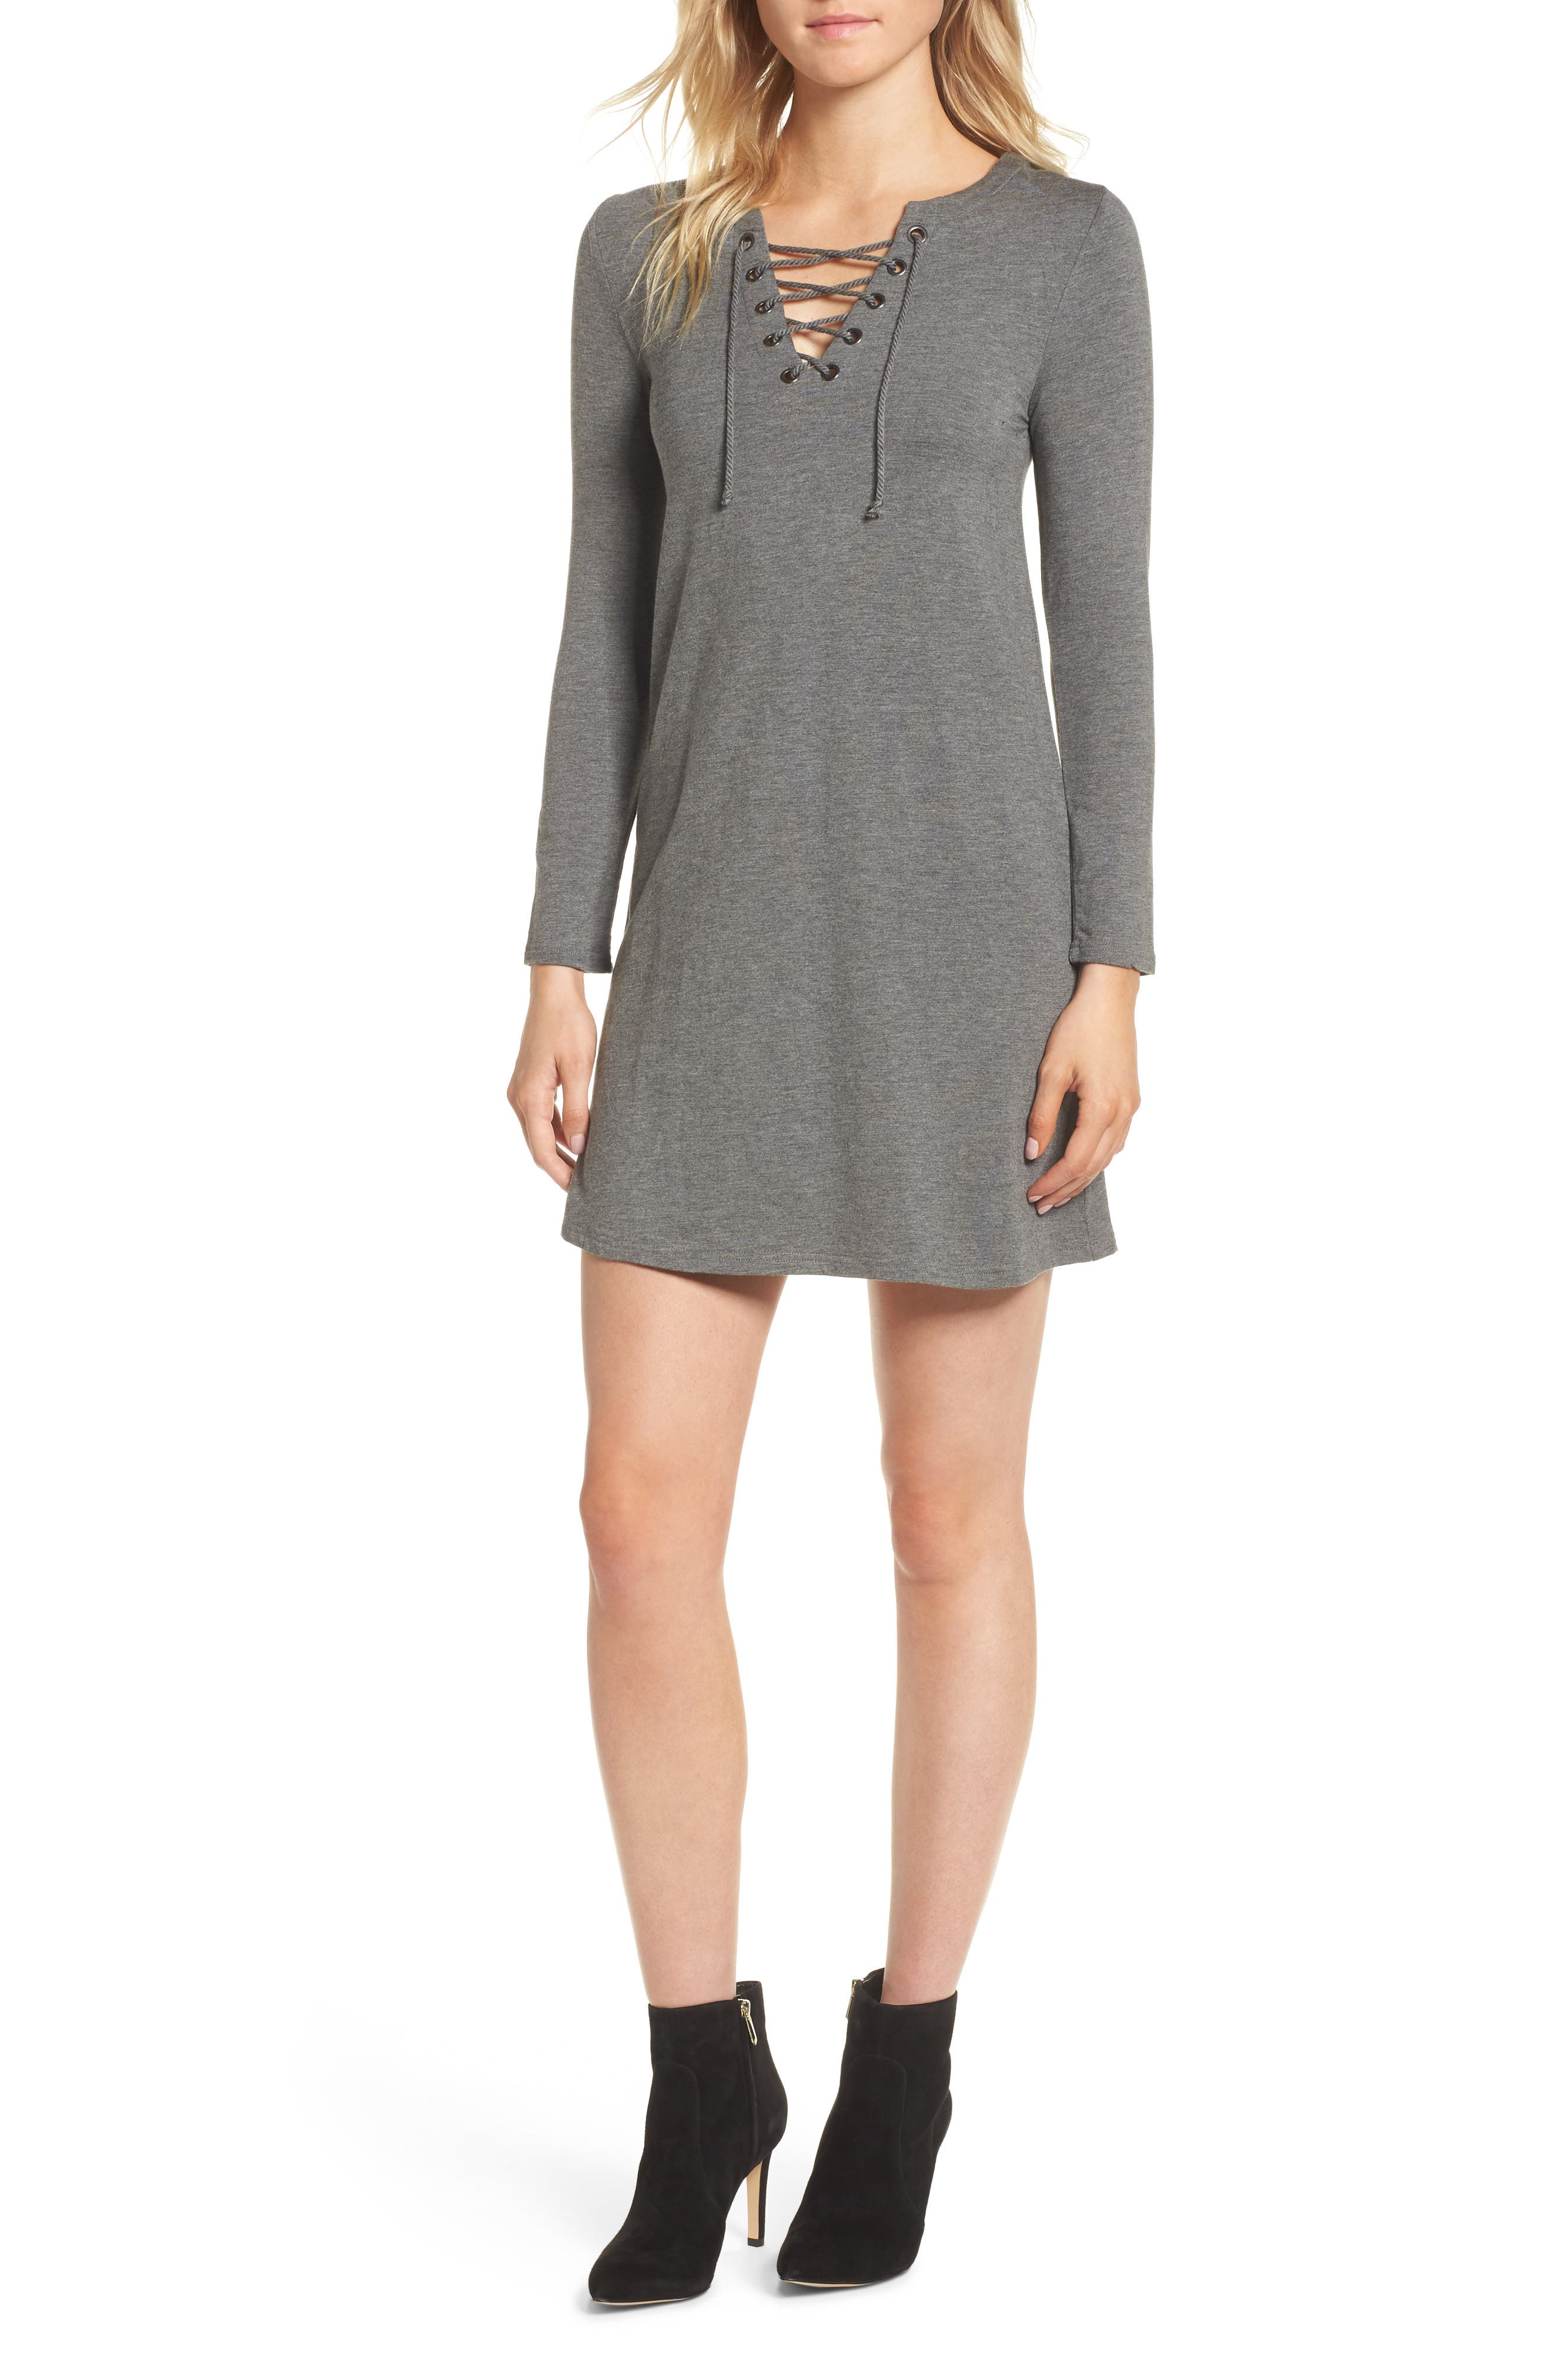 cupcakes and cashmere Celerina Lace-Up Minidress